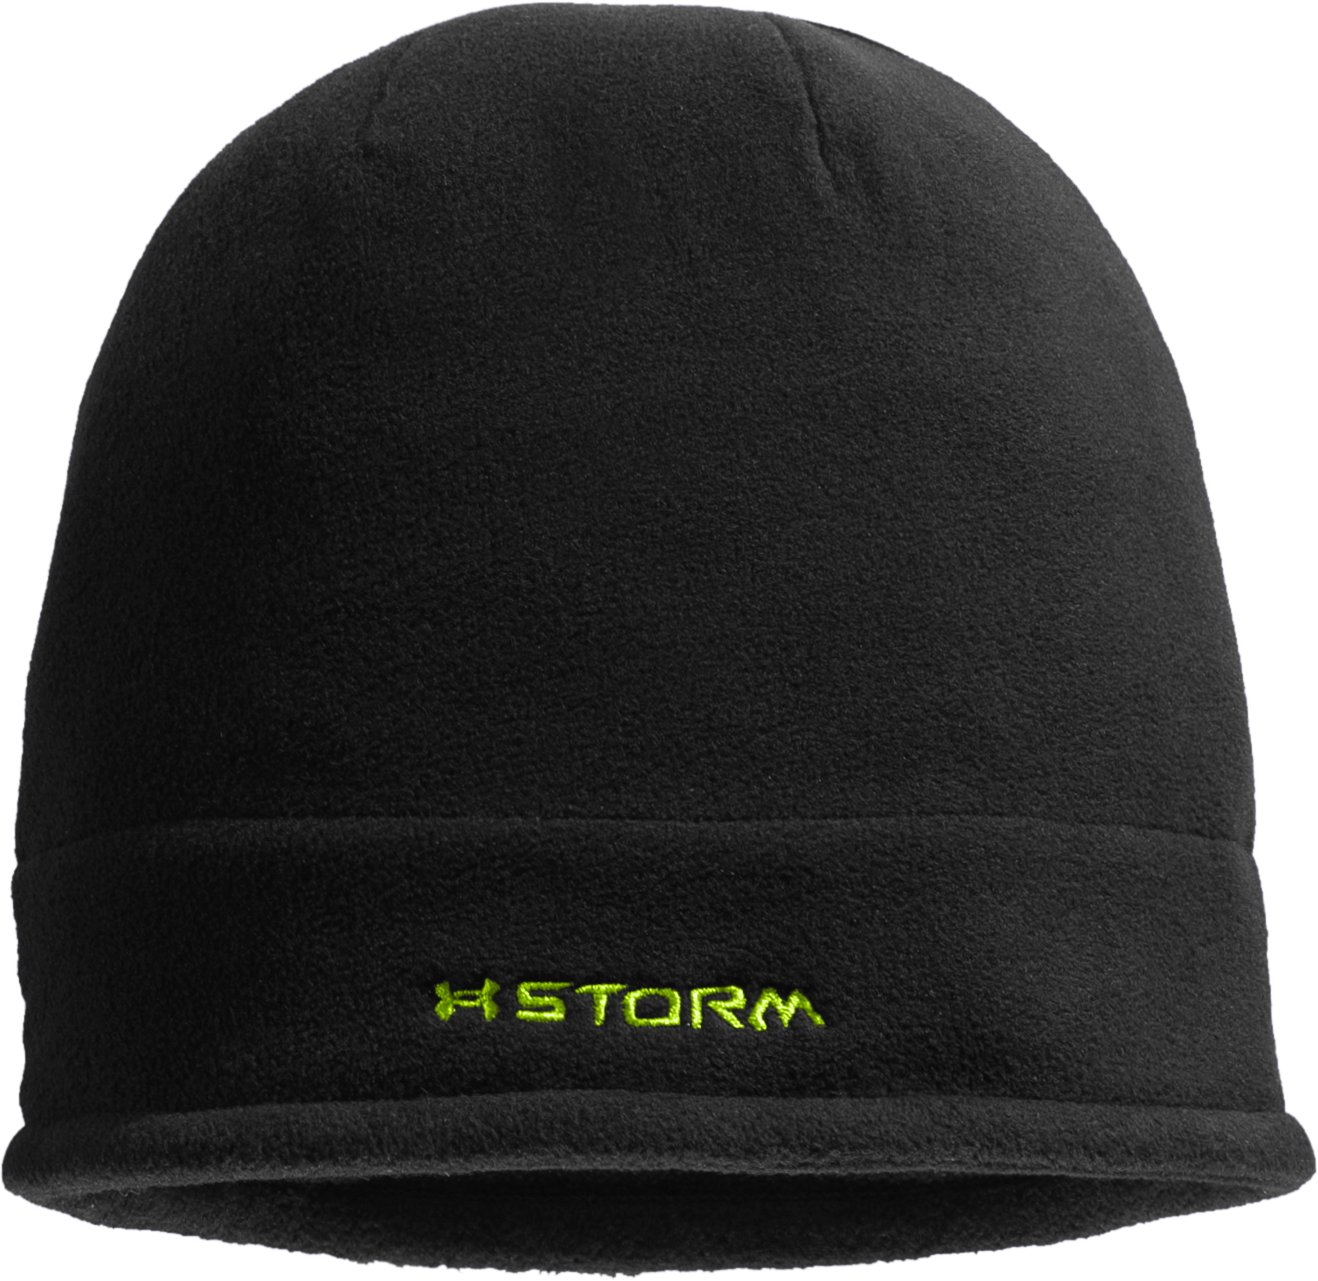 Boys' ColdGear® Infrared Fleece Storm Beanie, Black , undefined